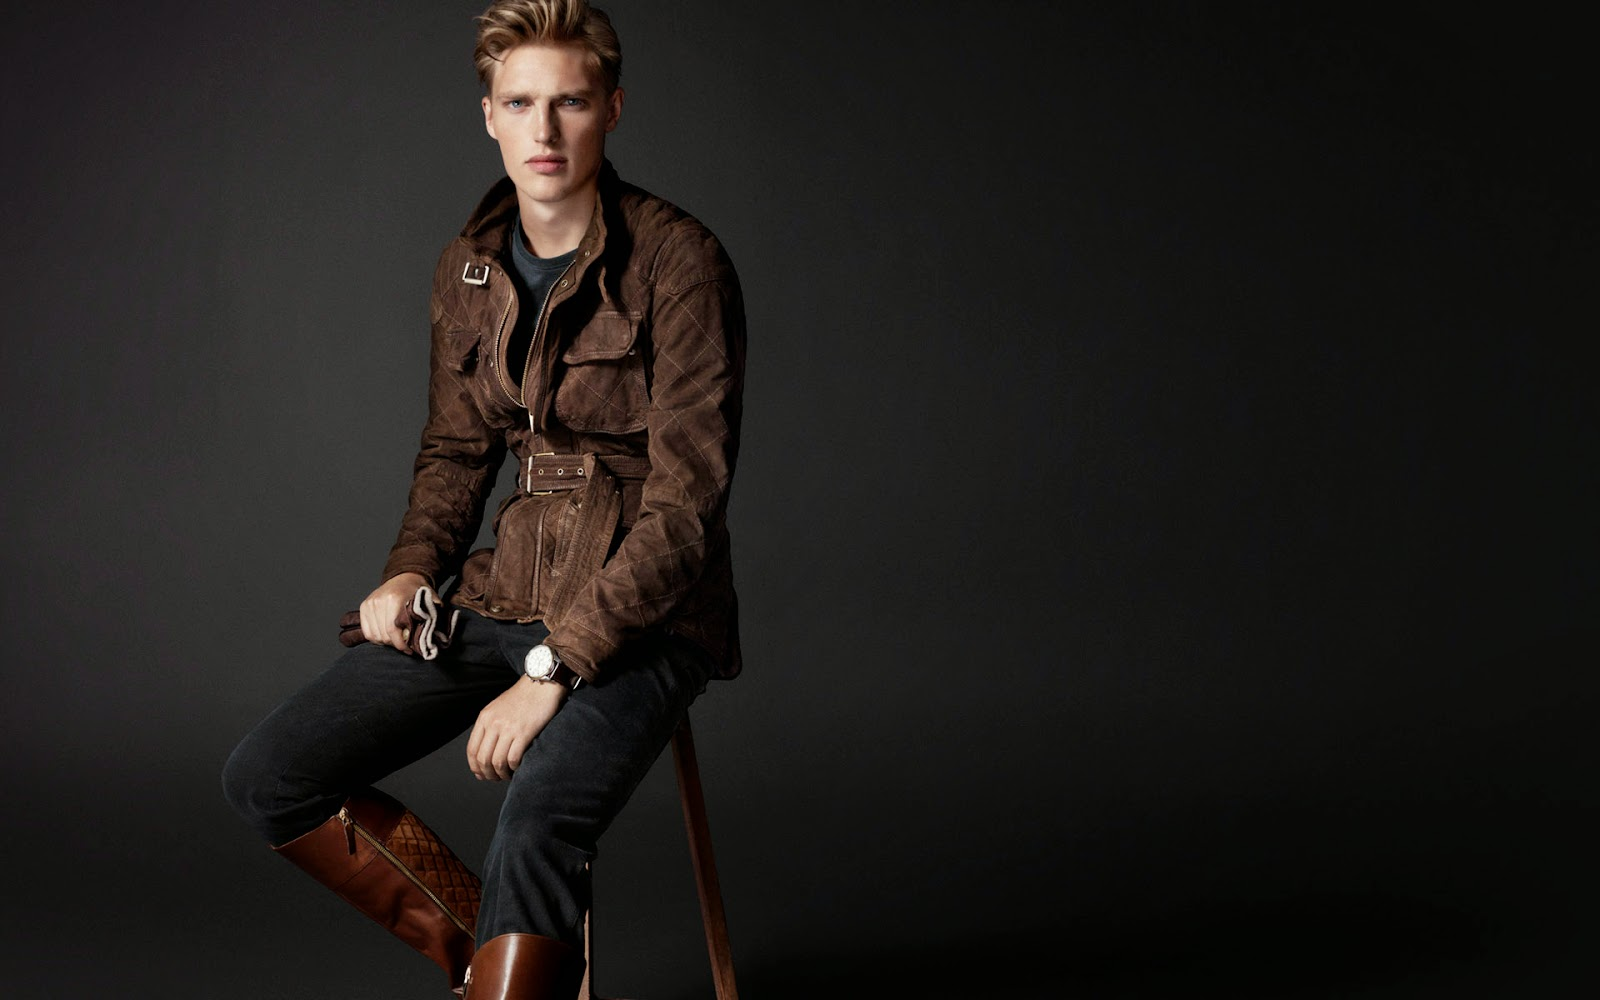 Massimo Dutti AW14 Equestrian Collection Massimo Dutti AW14 Equestrian Collection new photo